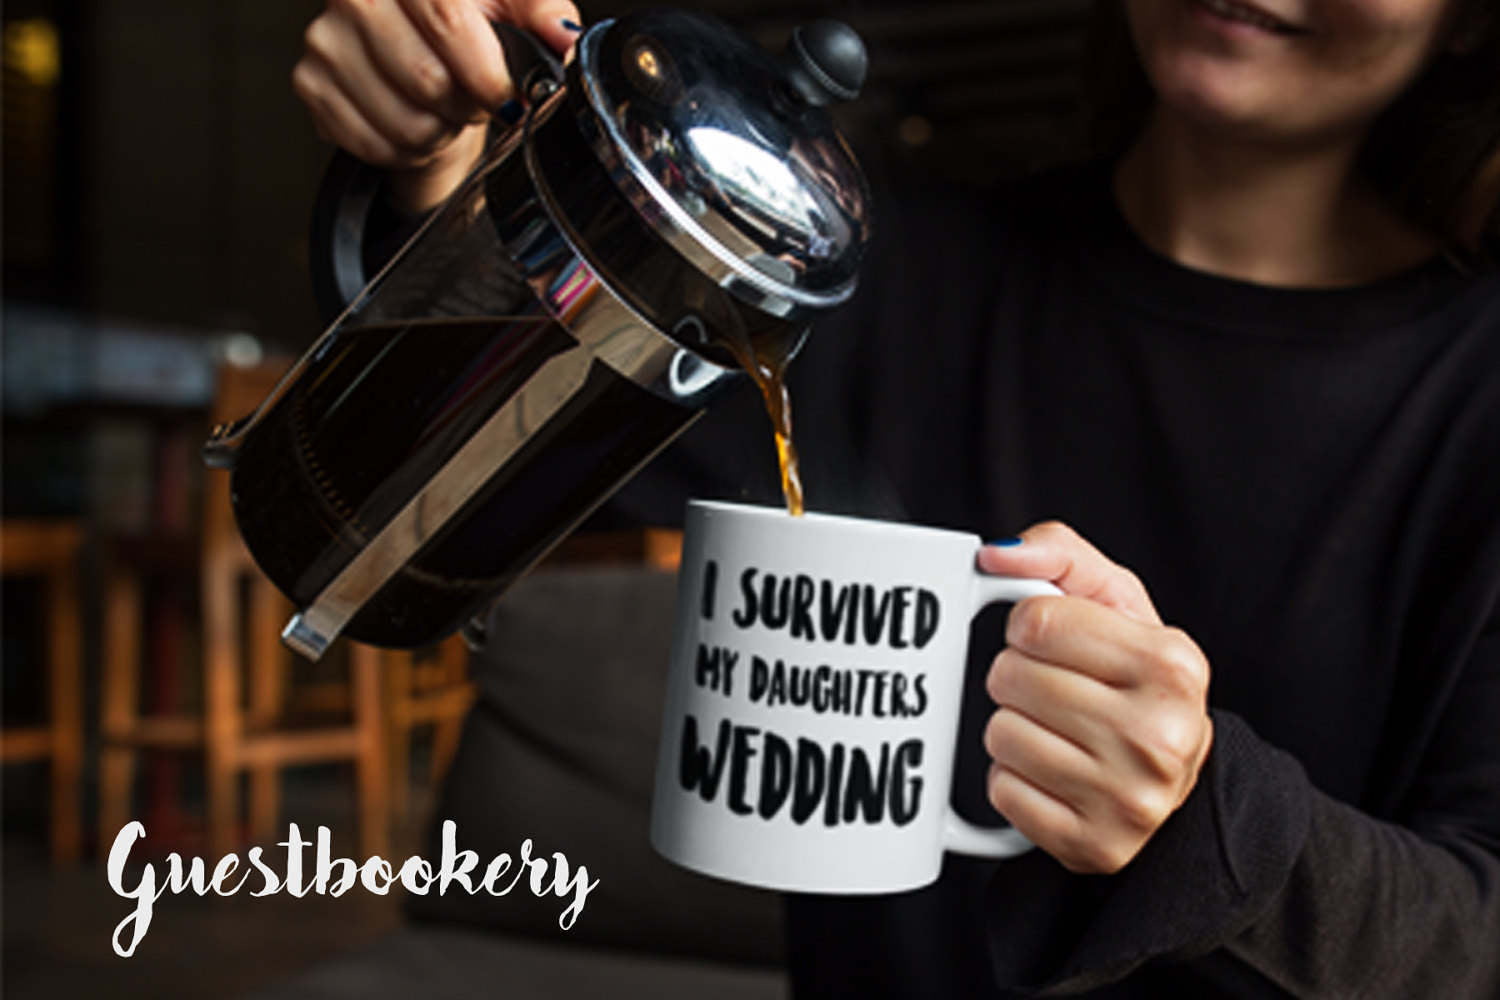 I Survived My Daughter's Wedding Mug - Guestbookery